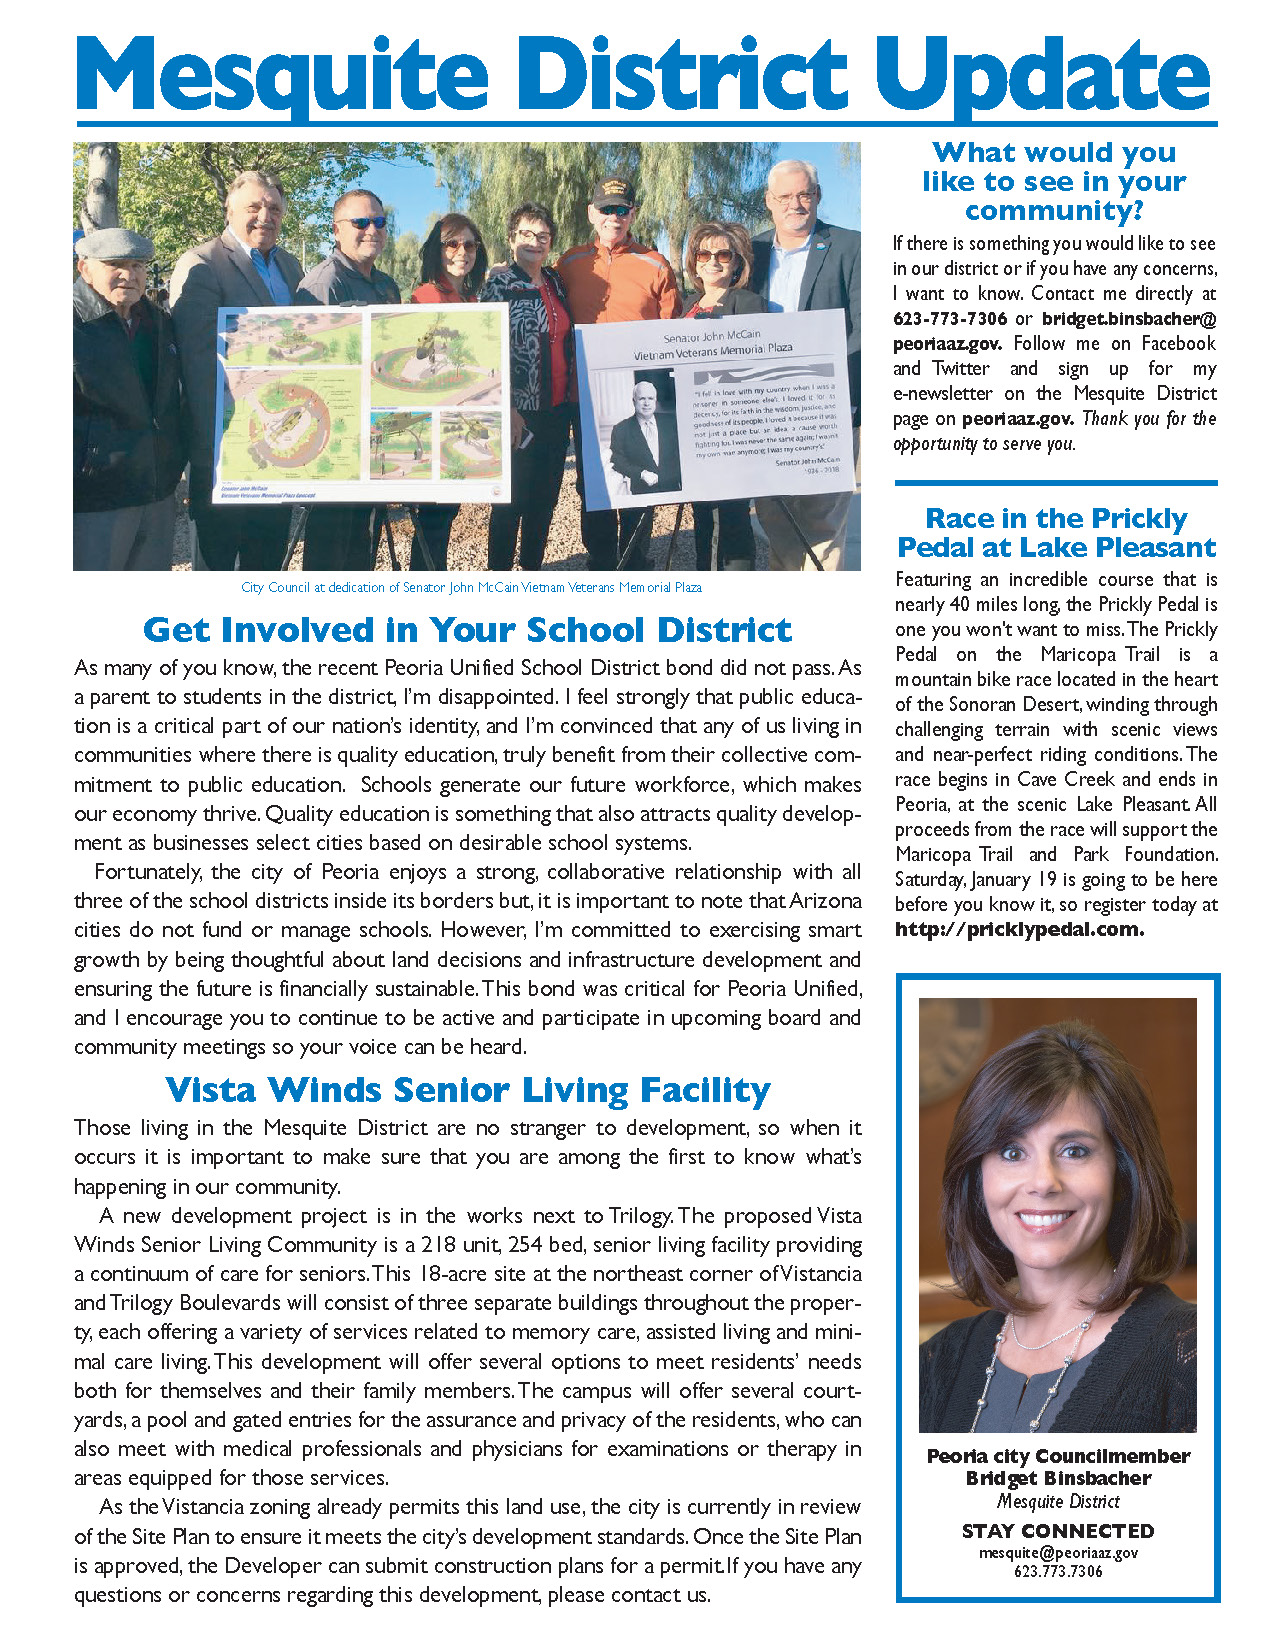 Monthly Mesquite District newsletter, courtesy of Friedman Realty Associates